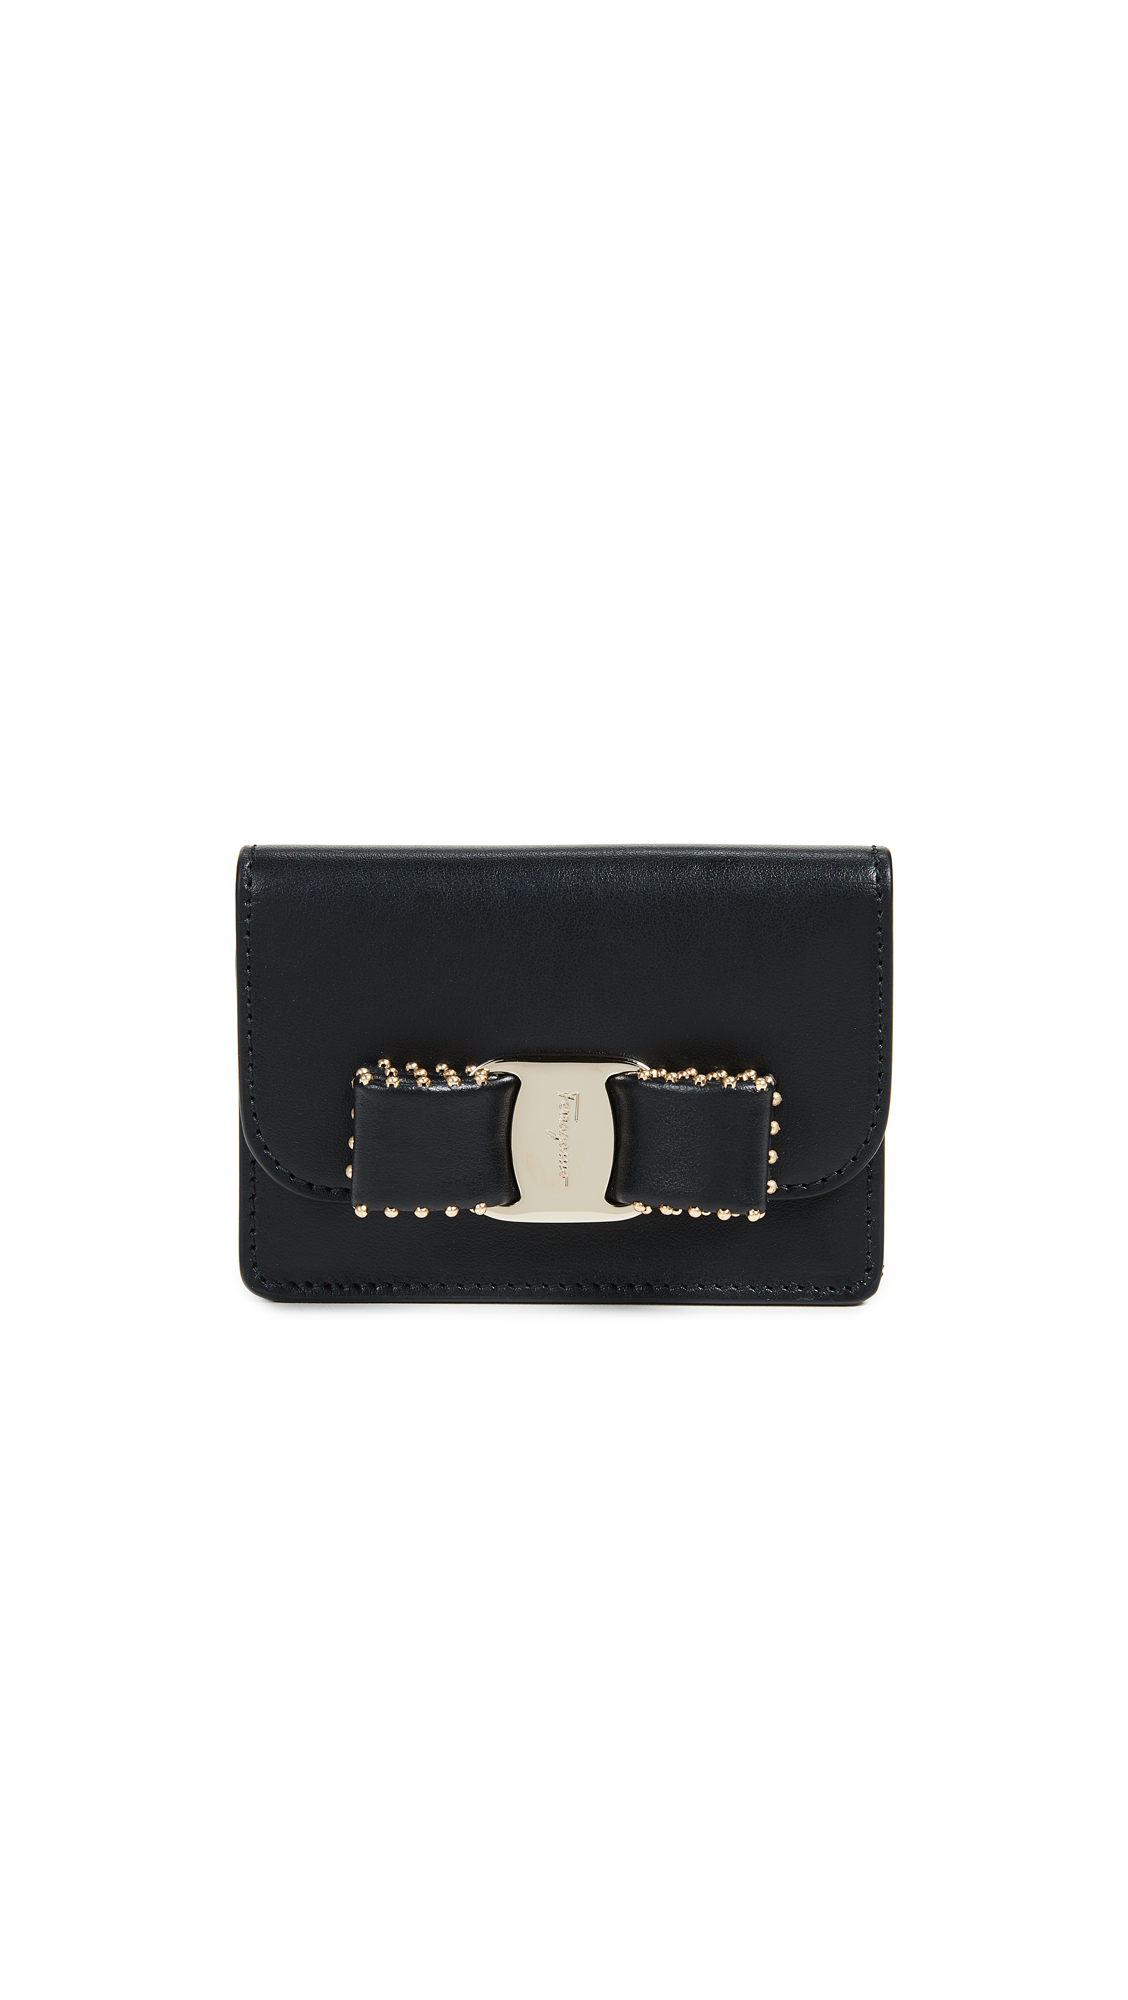 Lowest Price Buy Cheap Wide Range Of Vara Rainbow card case - Black Salvatore Ferragamo View Sale Online Outlet With Paypal qpTrbF